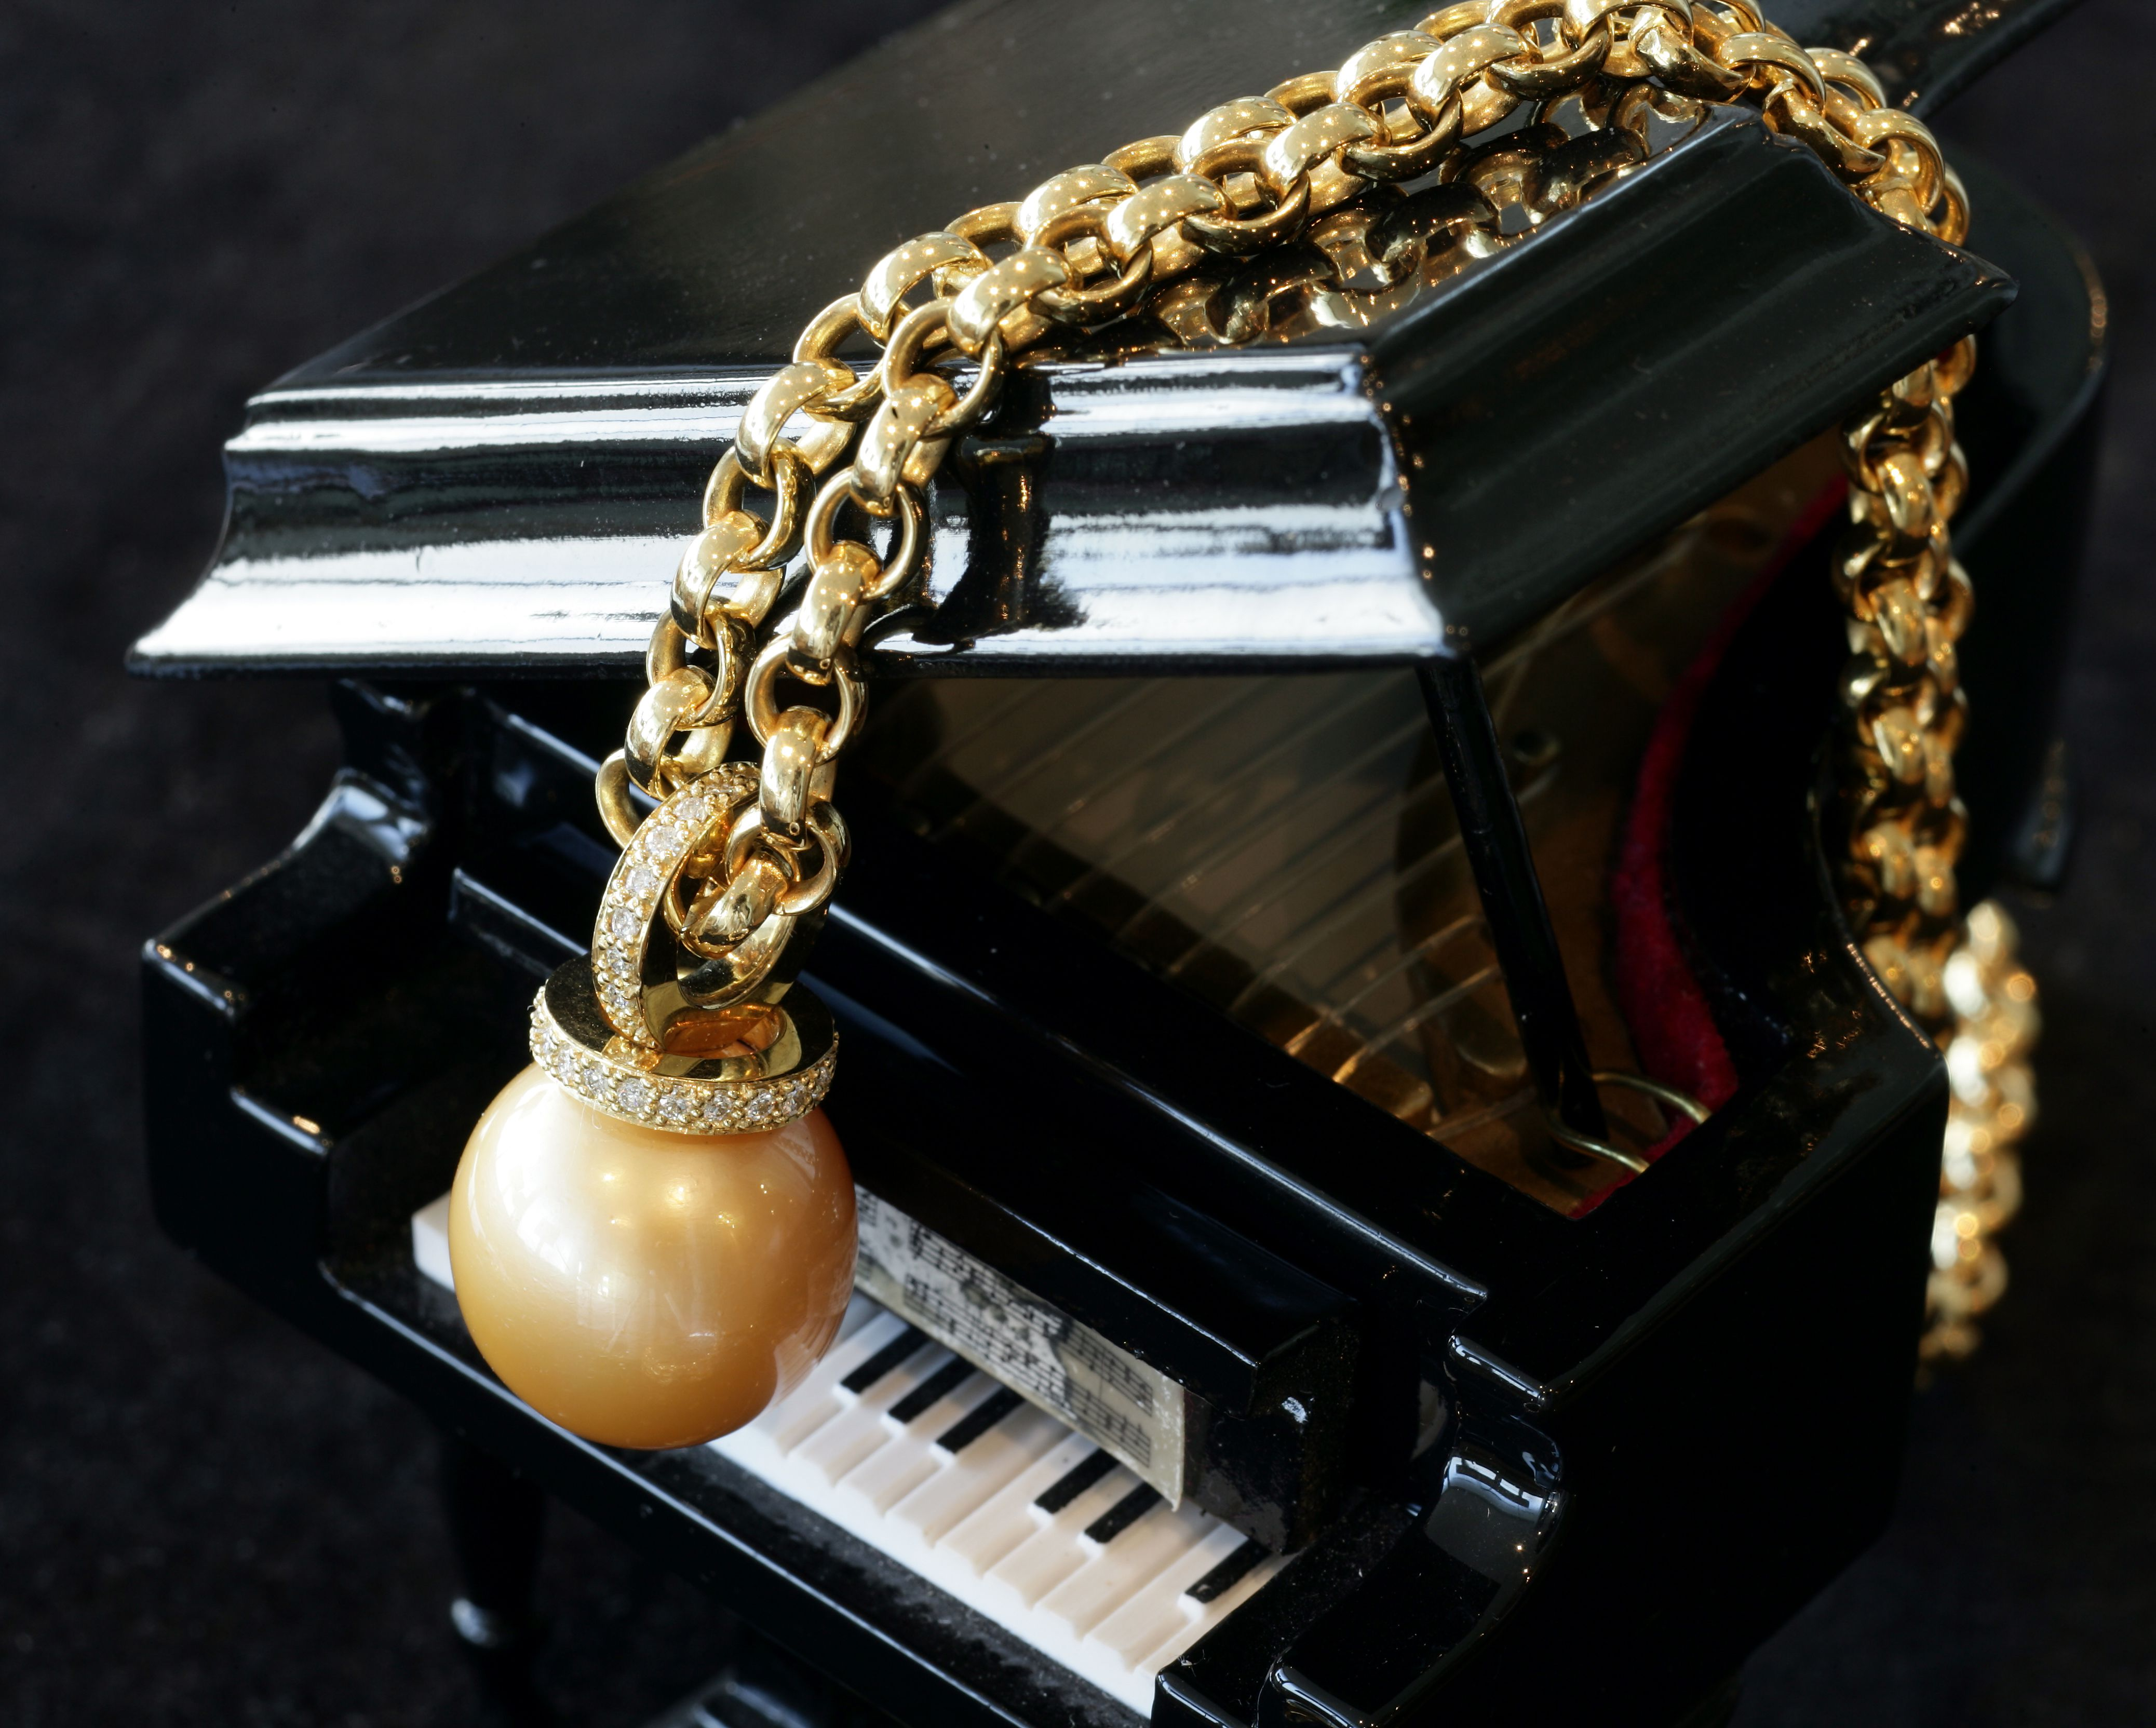 Pearl necklace on piano.jpg